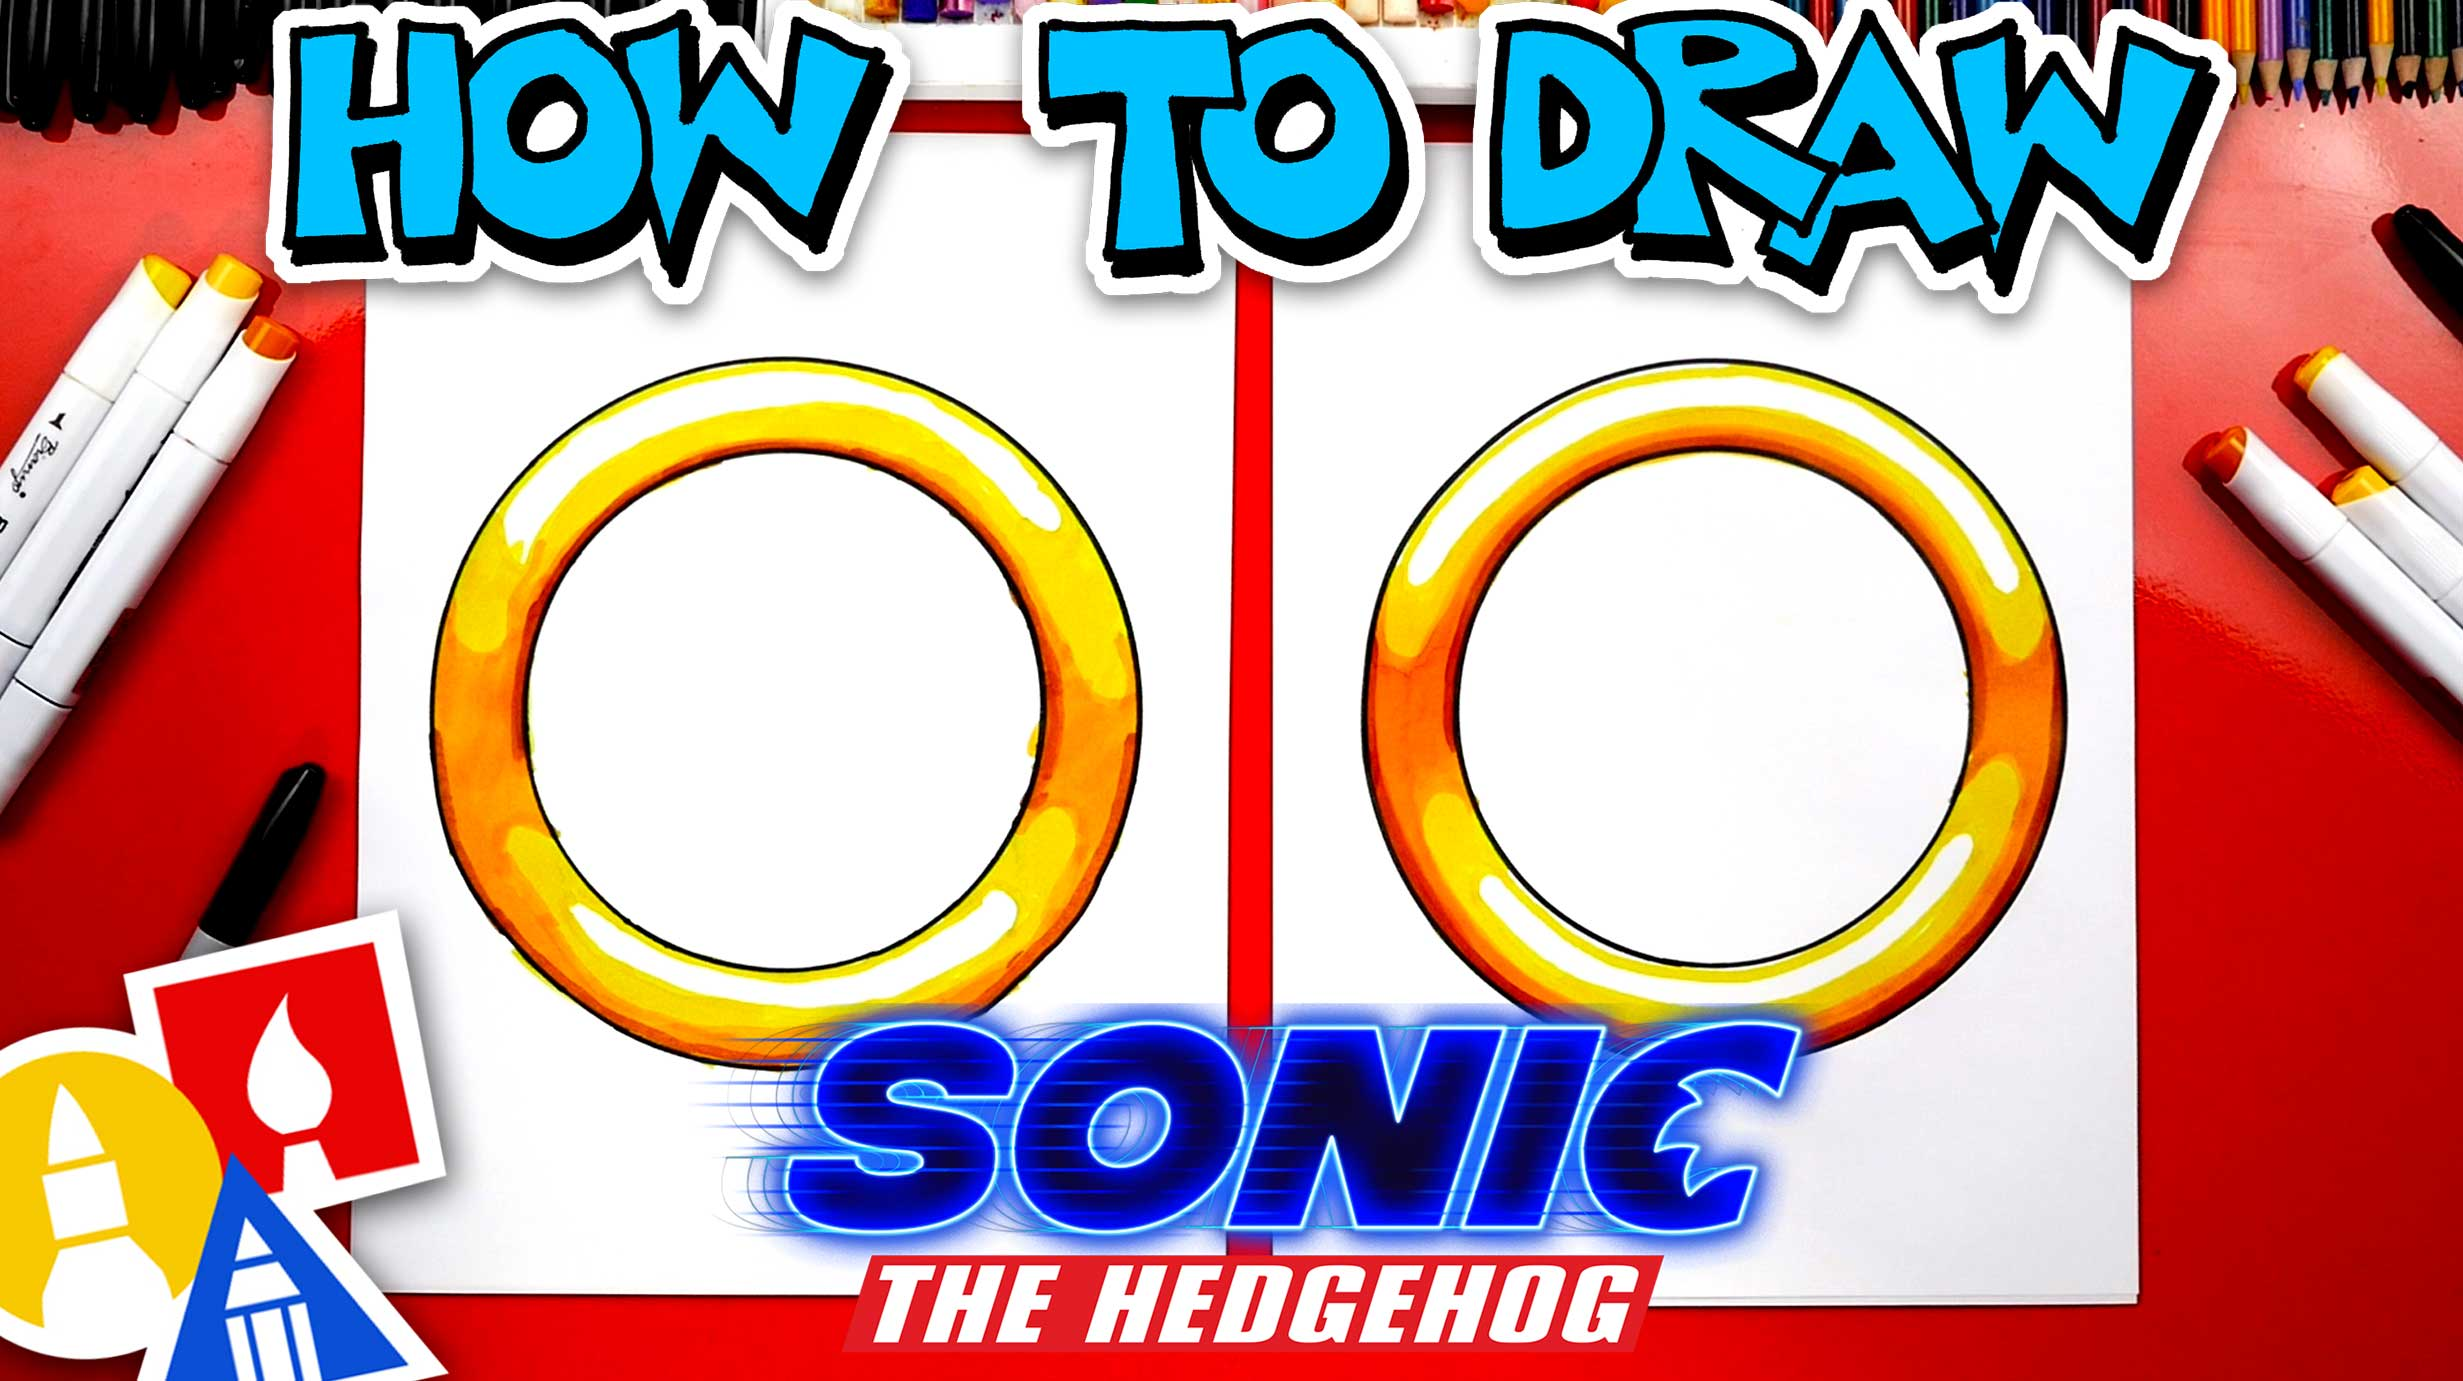 How To Draw A Ring From Sonic The Hedgehog Movie Art For Kids Hub